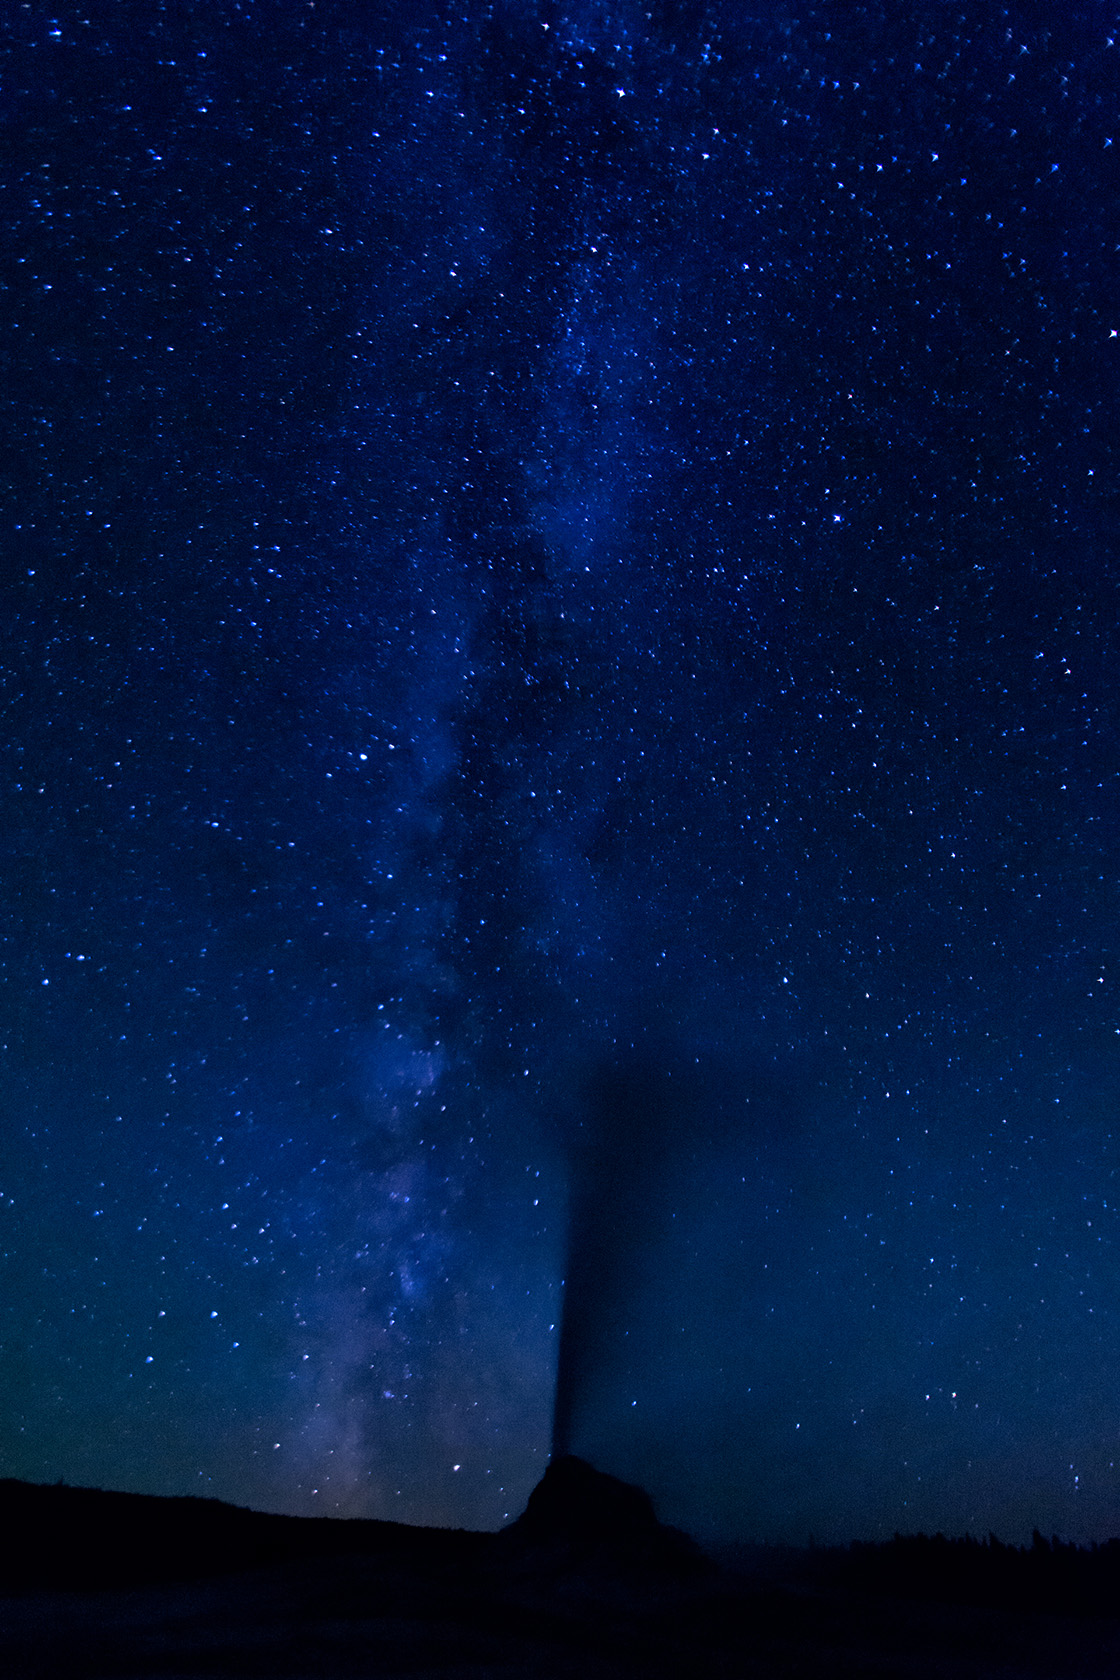 Milky Way and White Dome